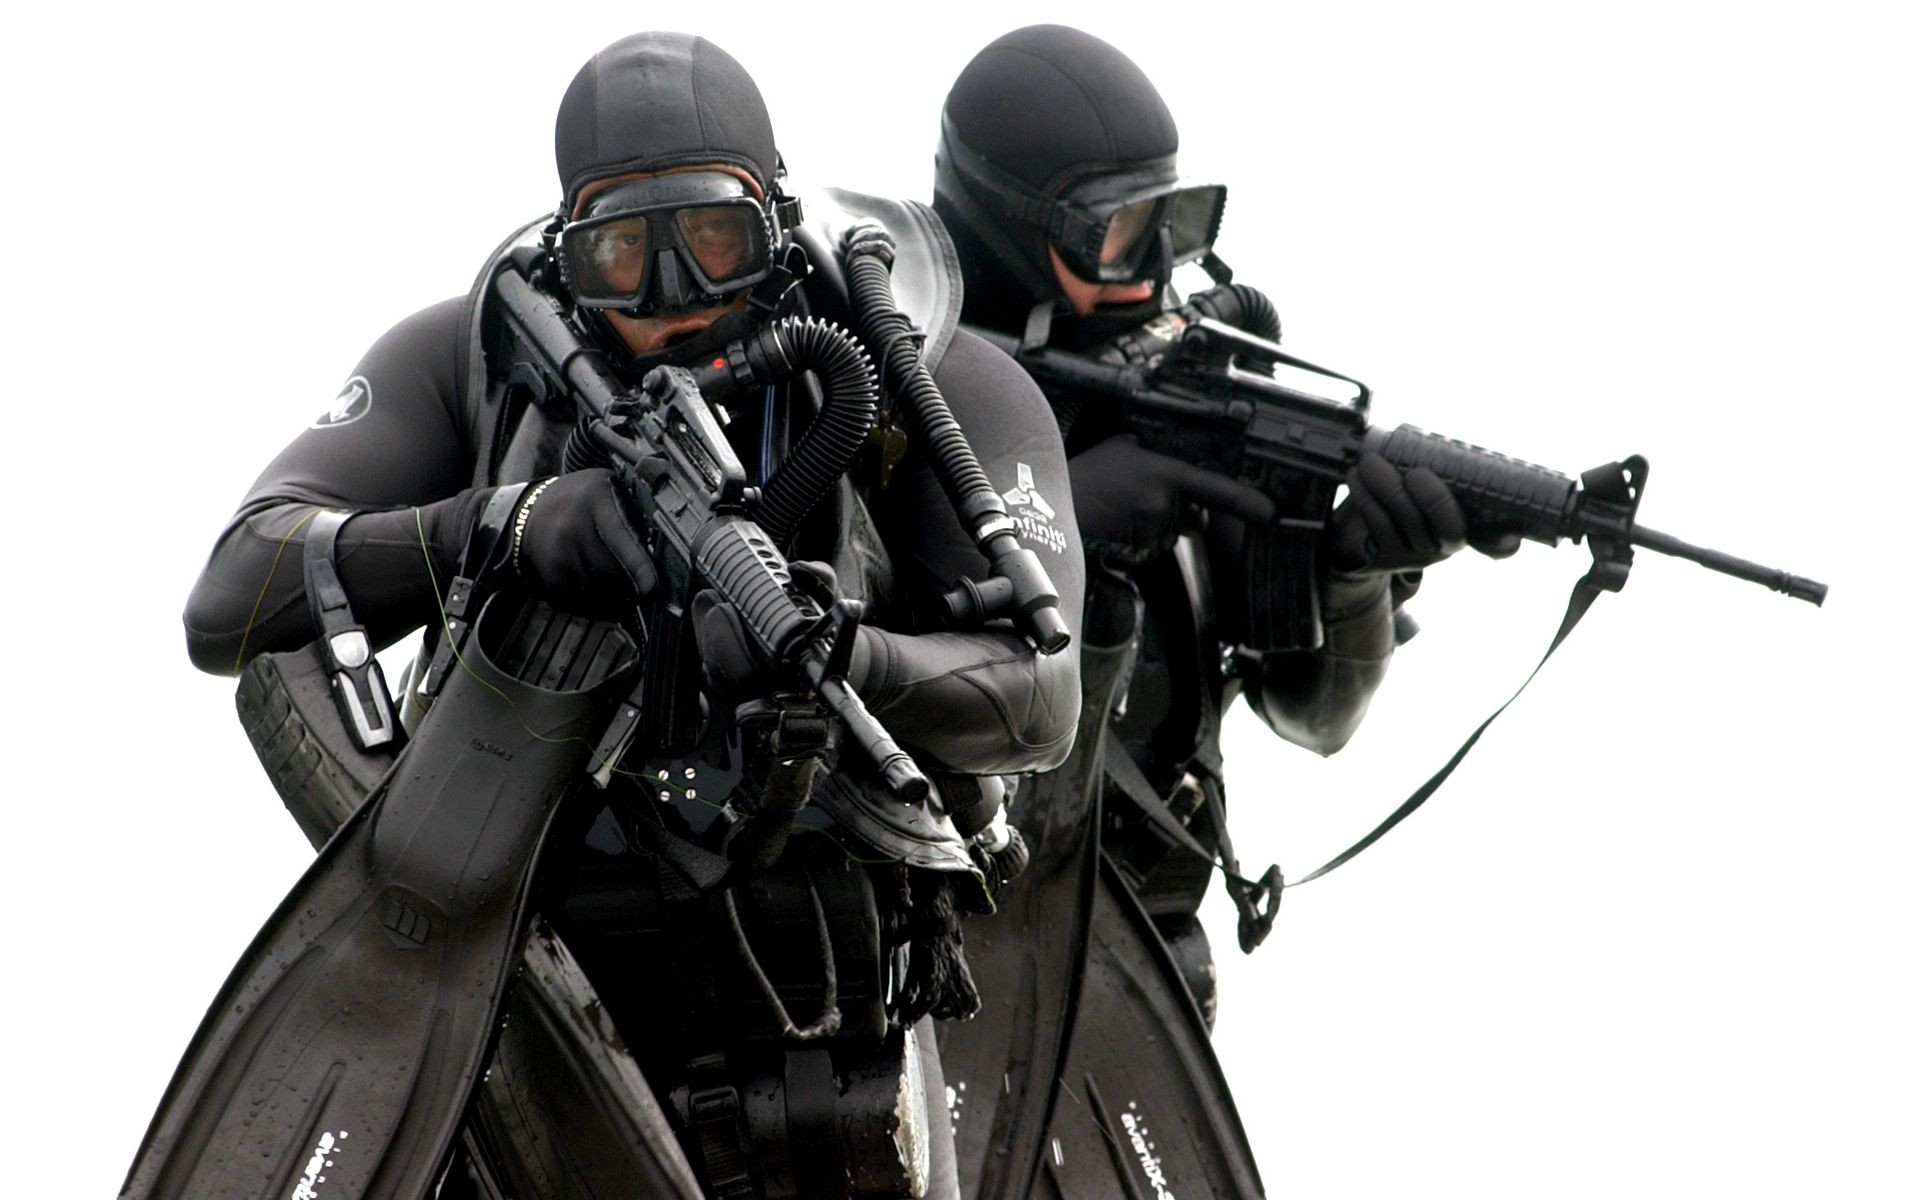 Us Naval Seal | navy seals One strike One Kill! US Navy Seals Bad to